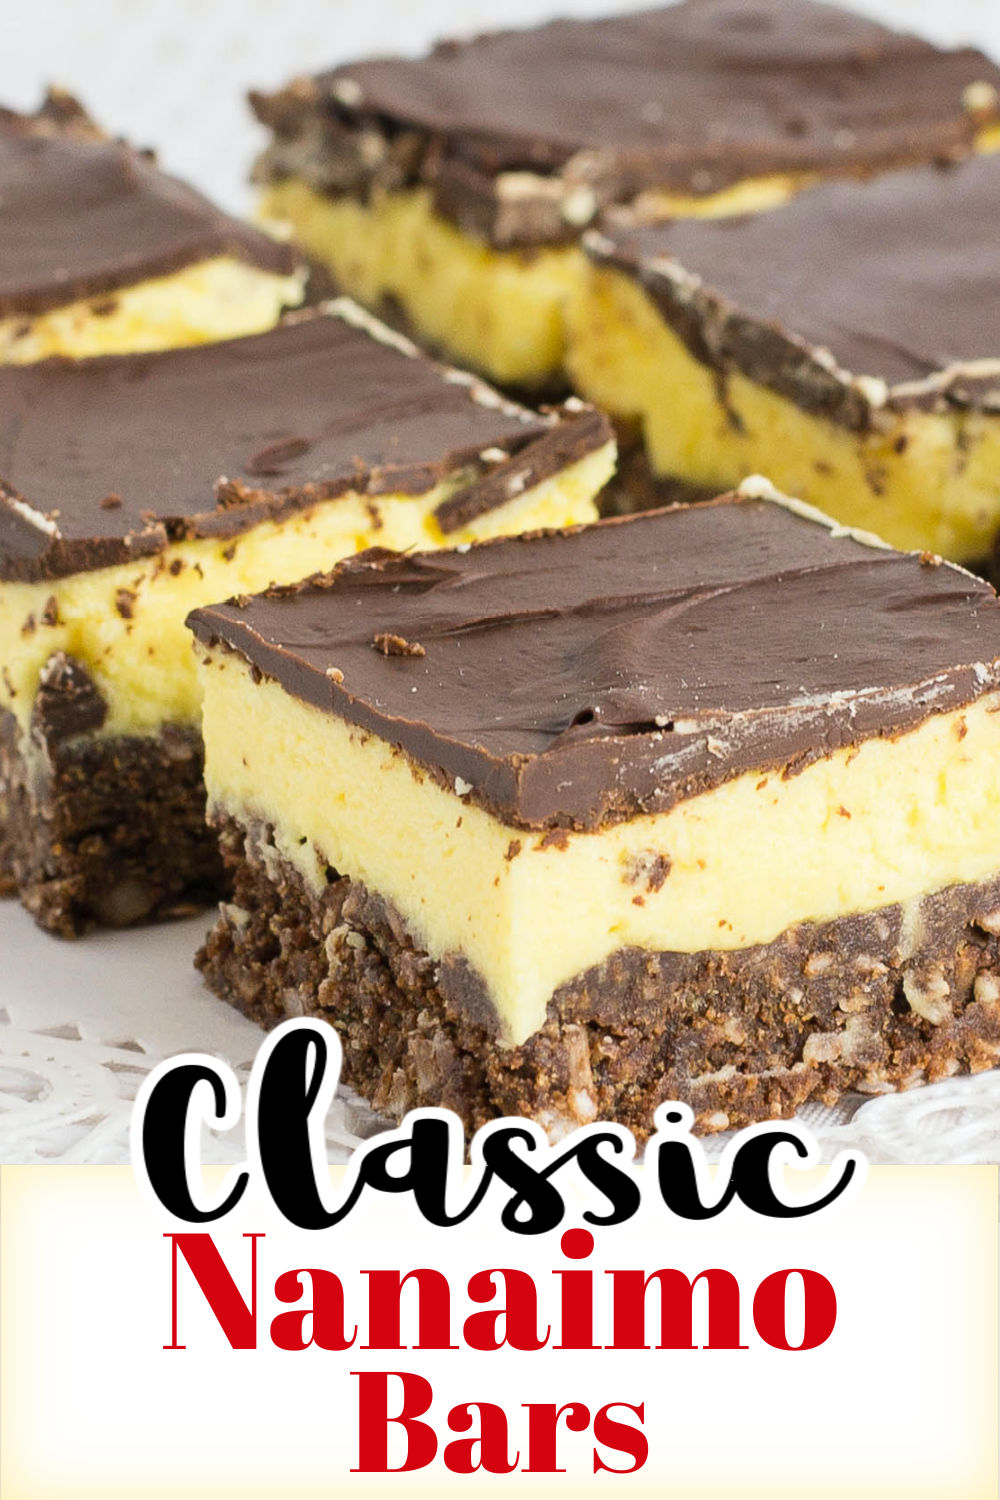 Classic Nanaimo bars are delicious layers of chocolate coconut crumb crust, custard filling and chocolate coating. via @artandthekitch